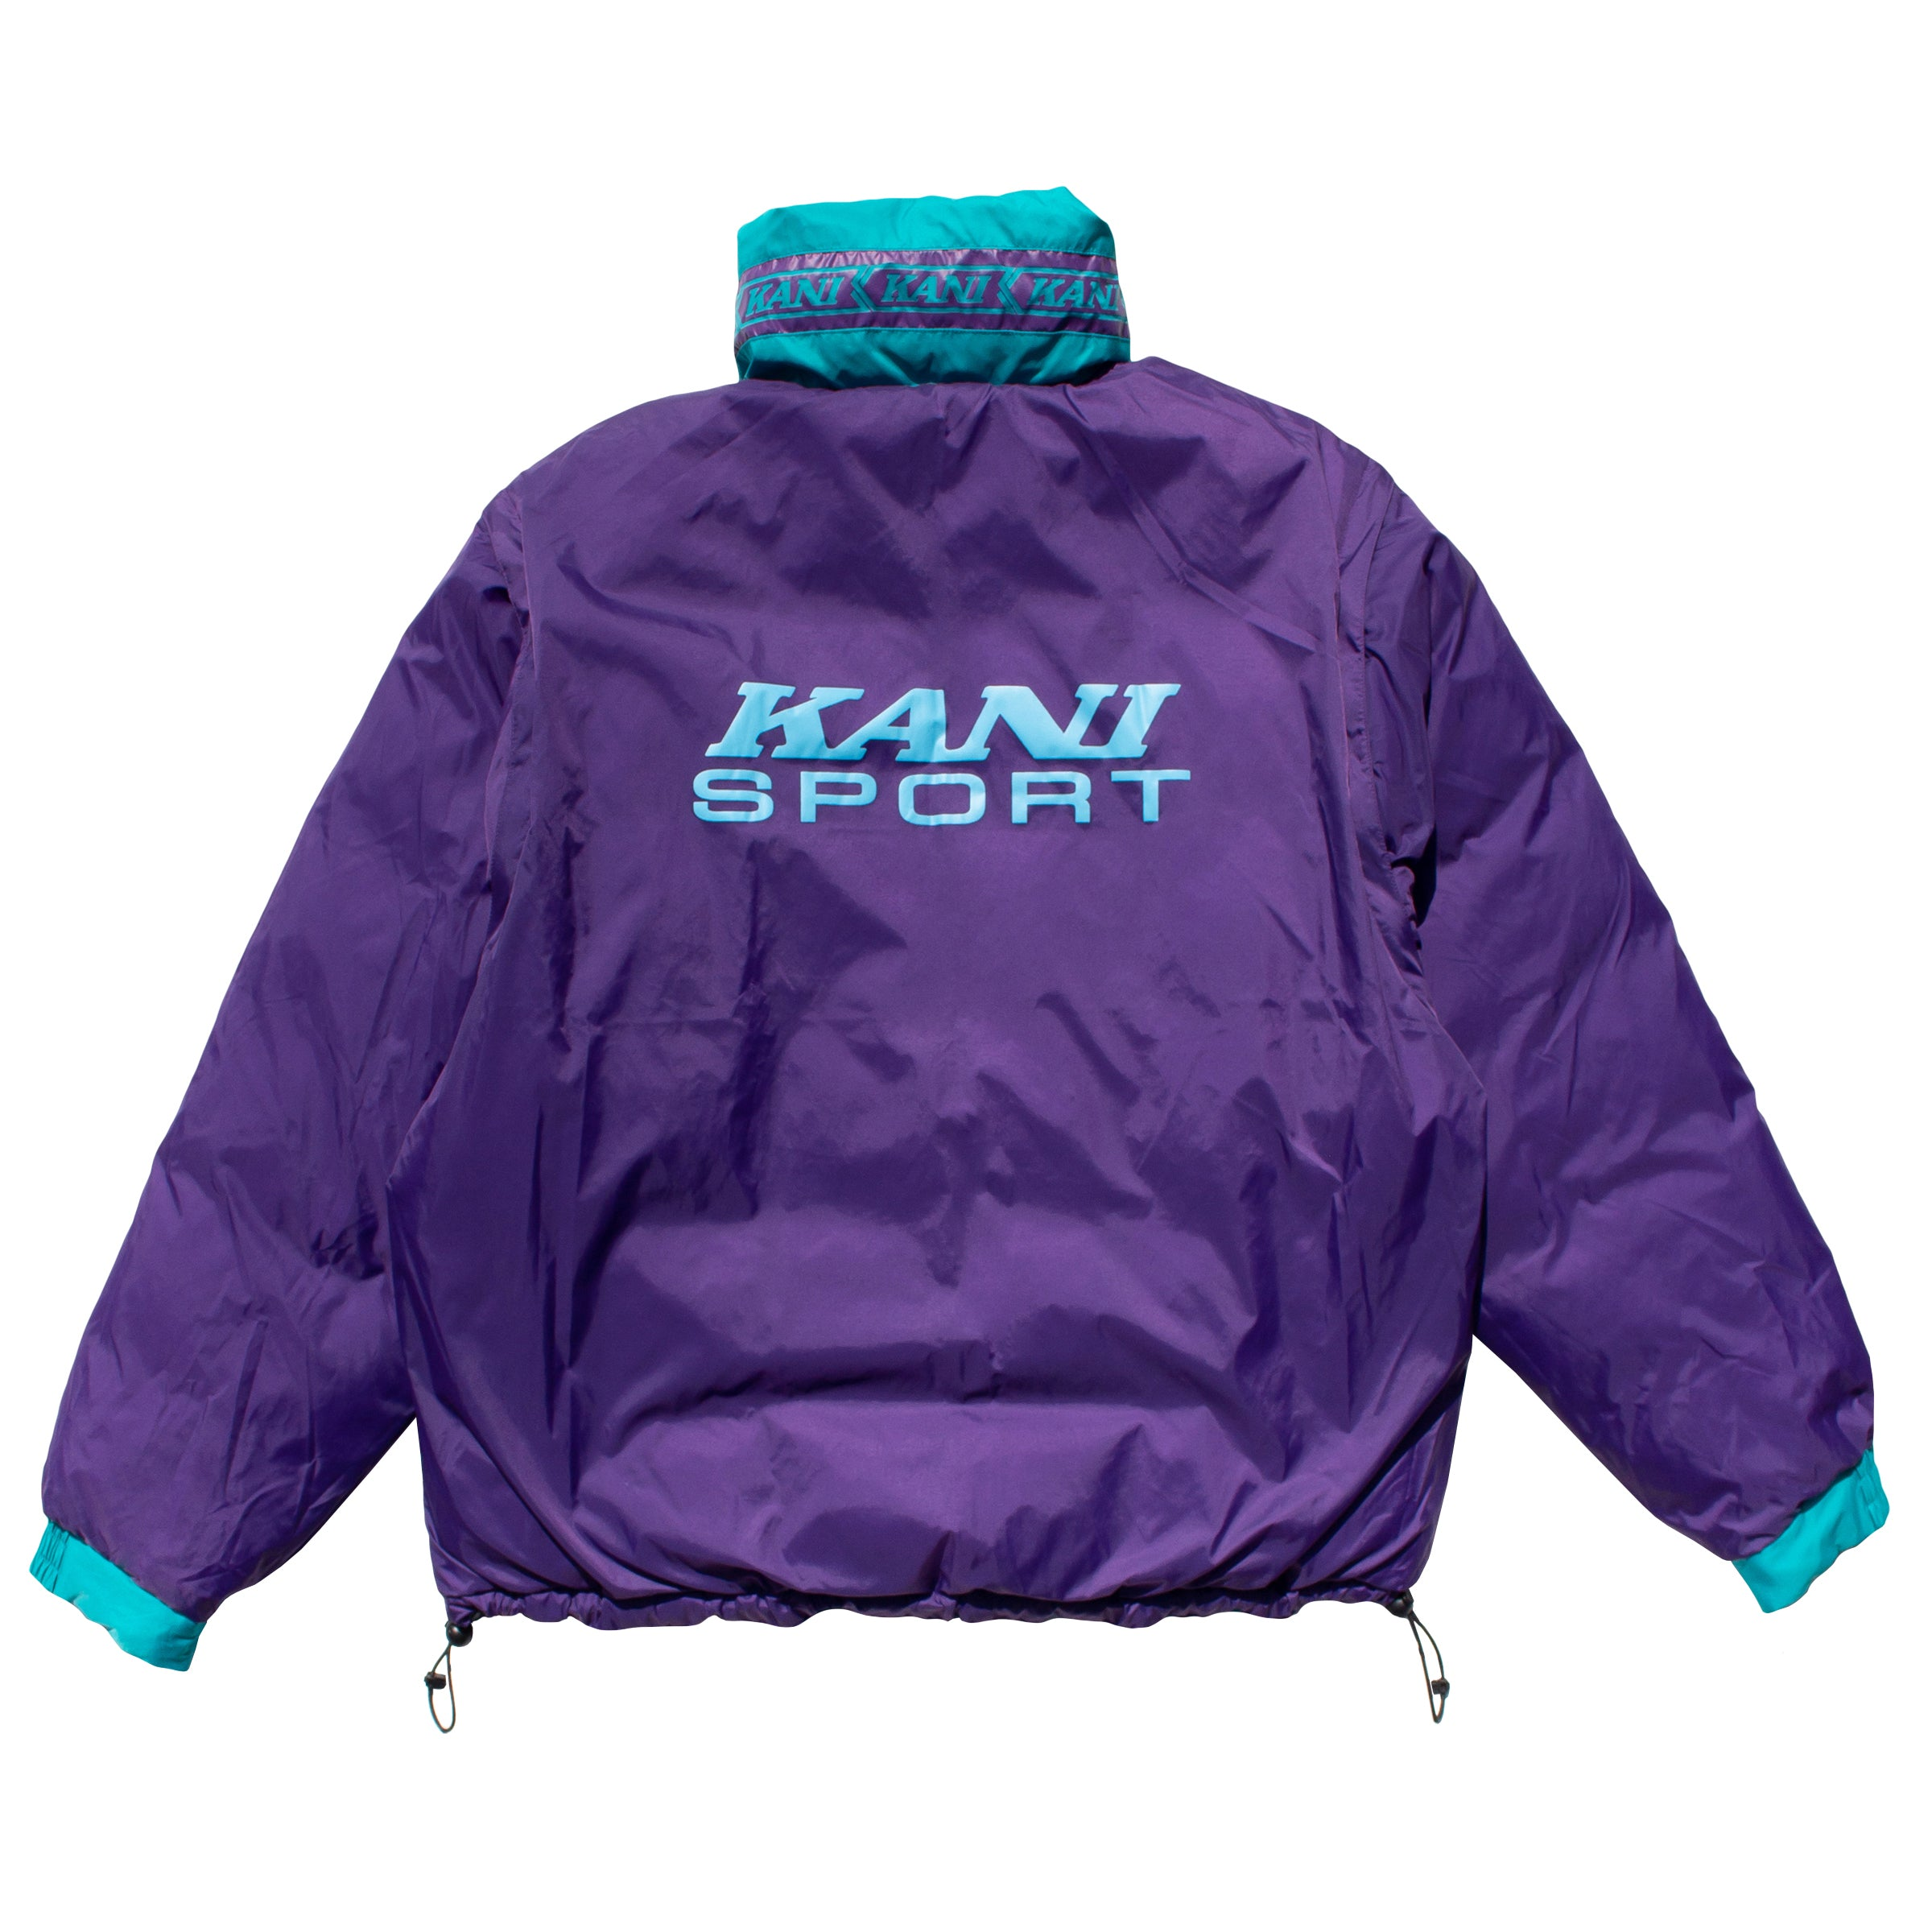 Kani Bubble Coat (Teal)